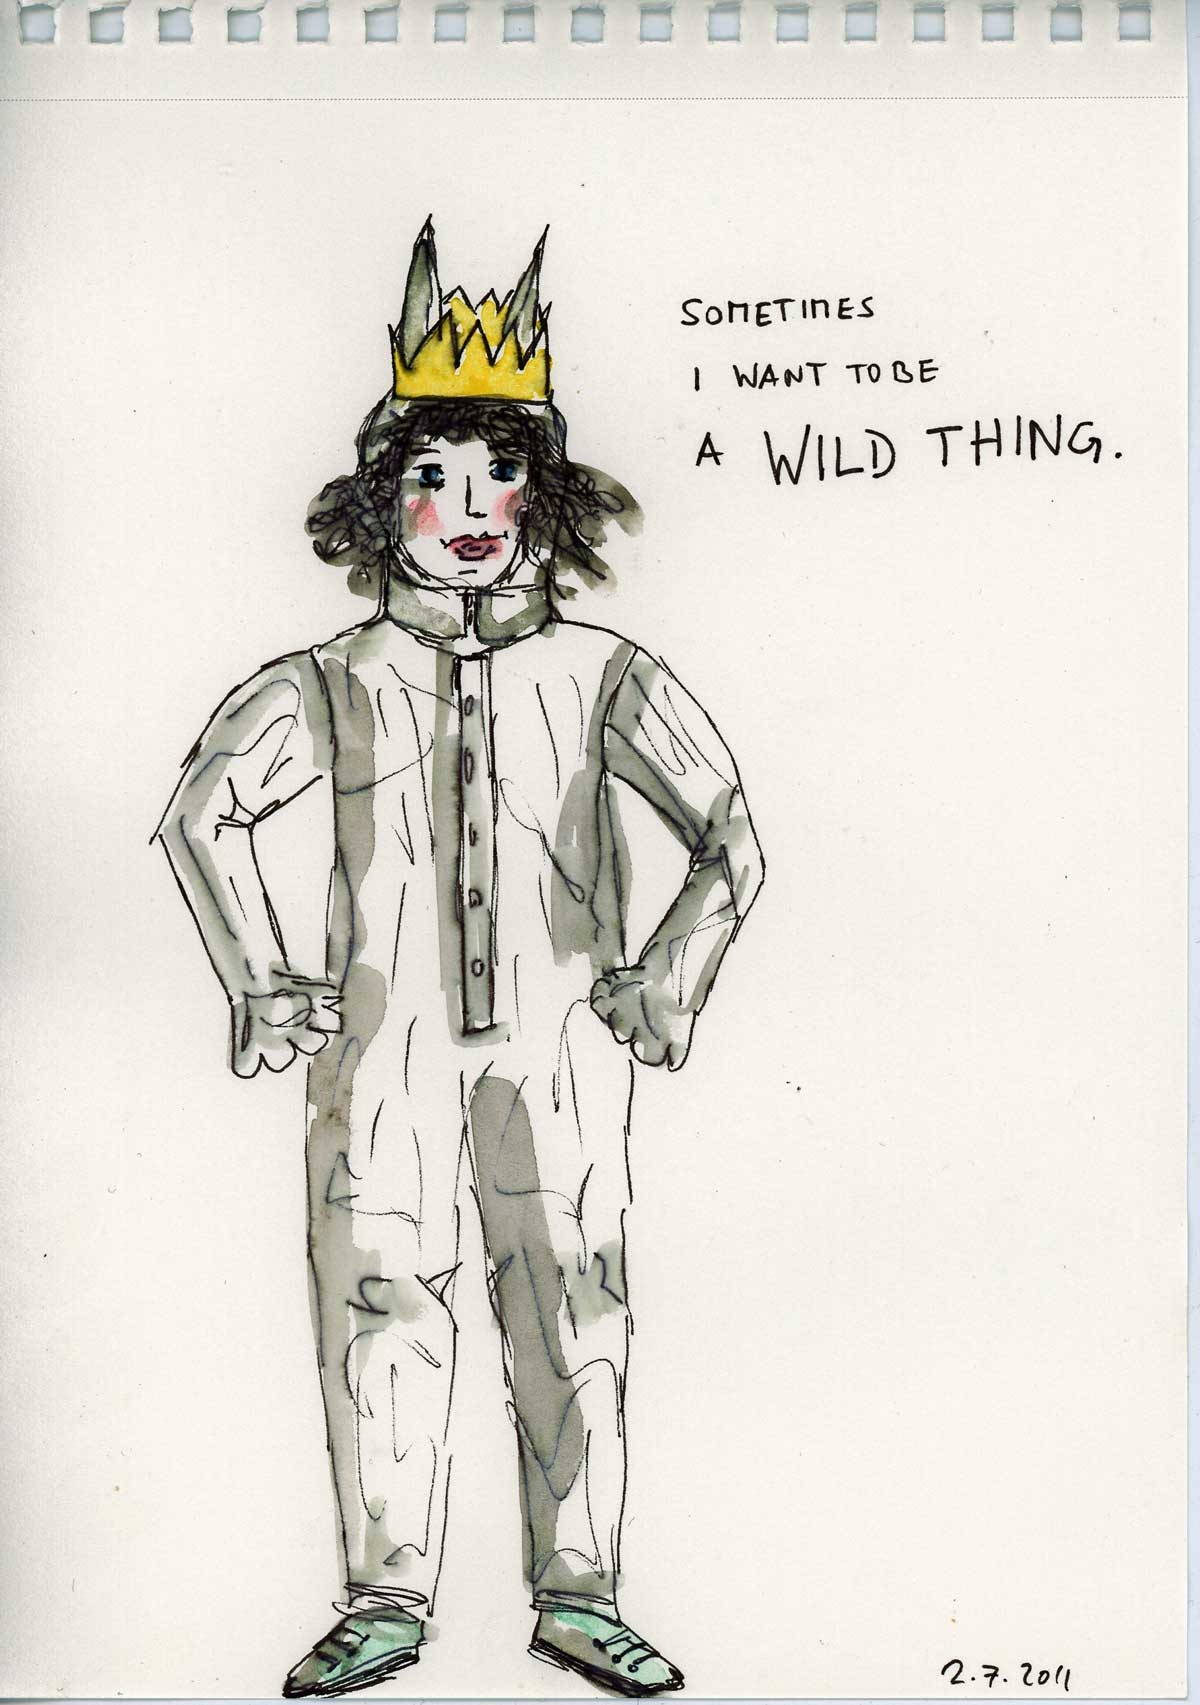 Be Creative #183, I want to be a Wild Thing, © Ines Häufler, 2011